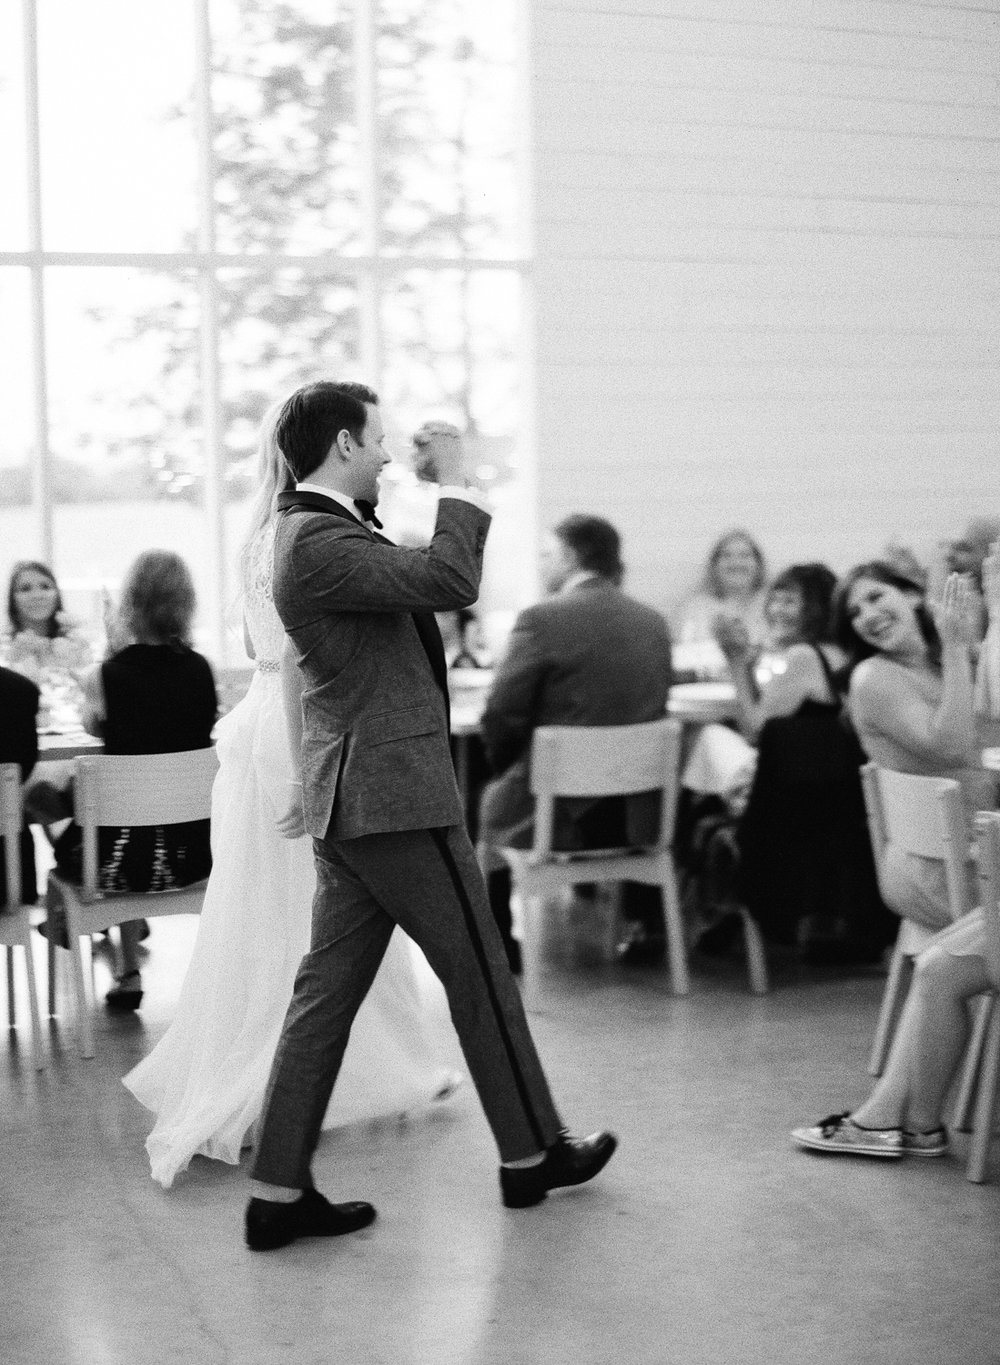 PROSPECT_HOUSE_WEDDING_AUSTIN_TX_BY_MATTHEW_MOORE_PHOTOGRAPHY_00604.jpg